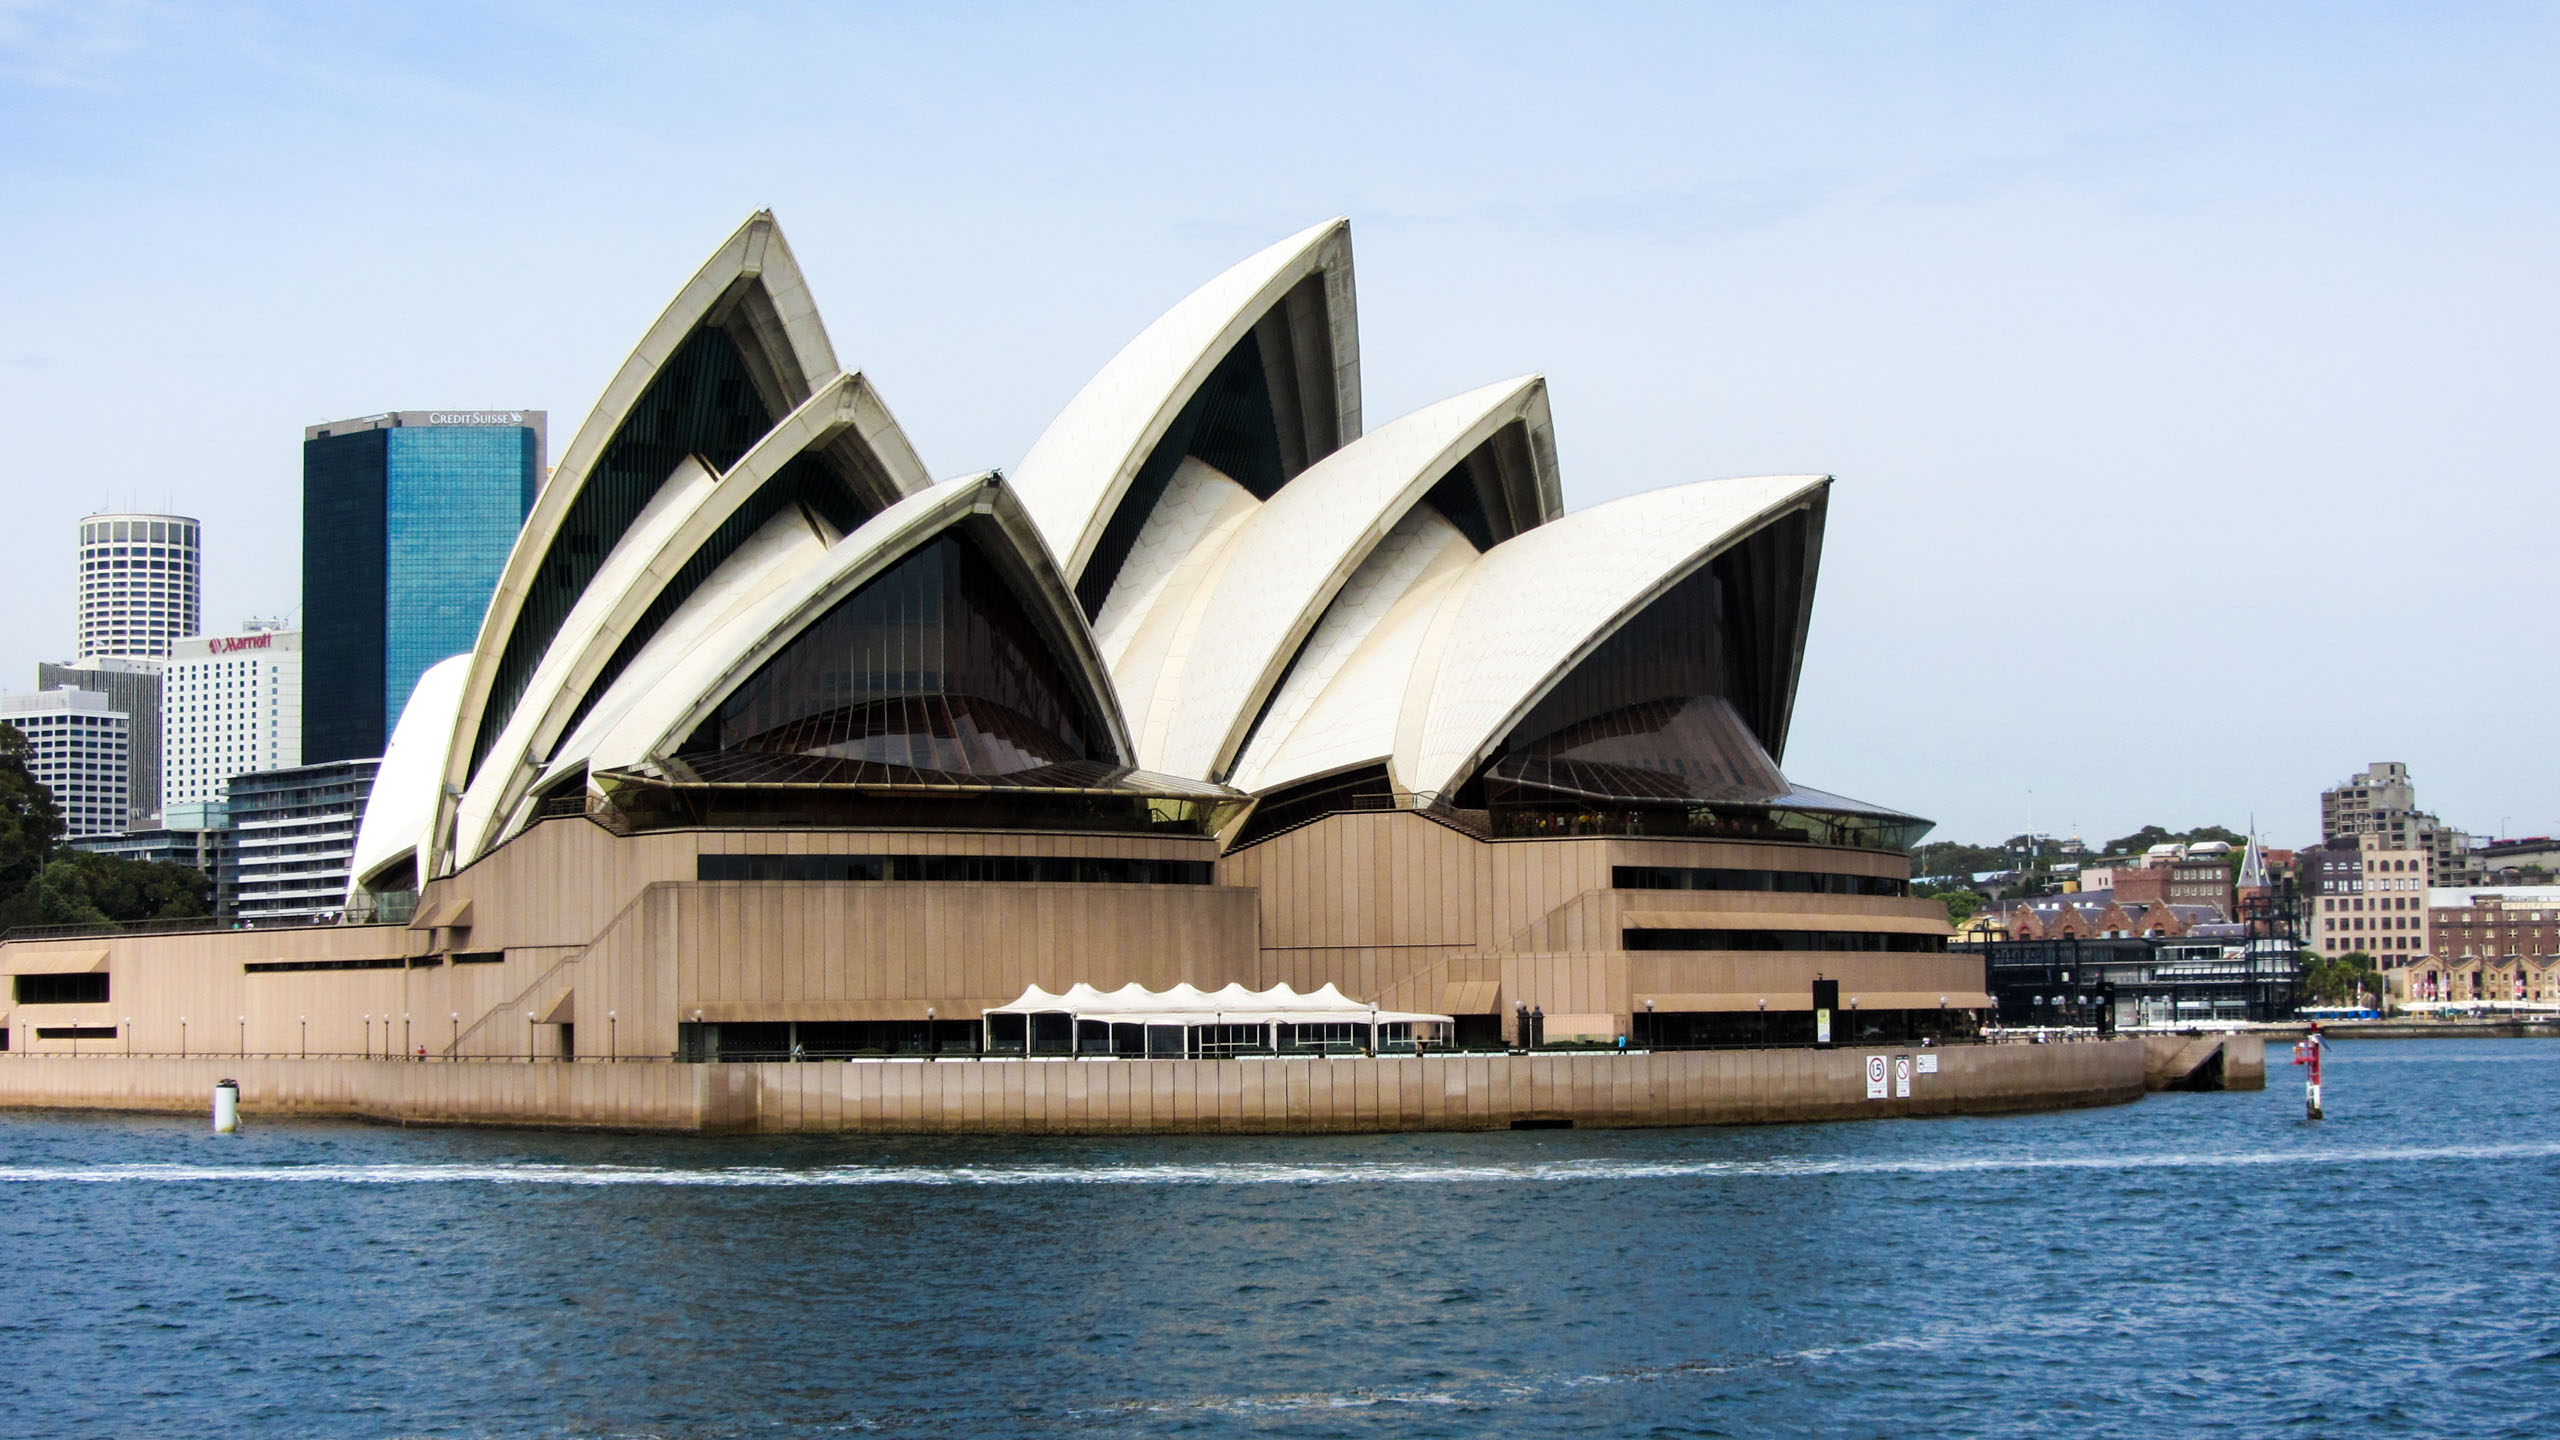 View of Sydney Opera House across water